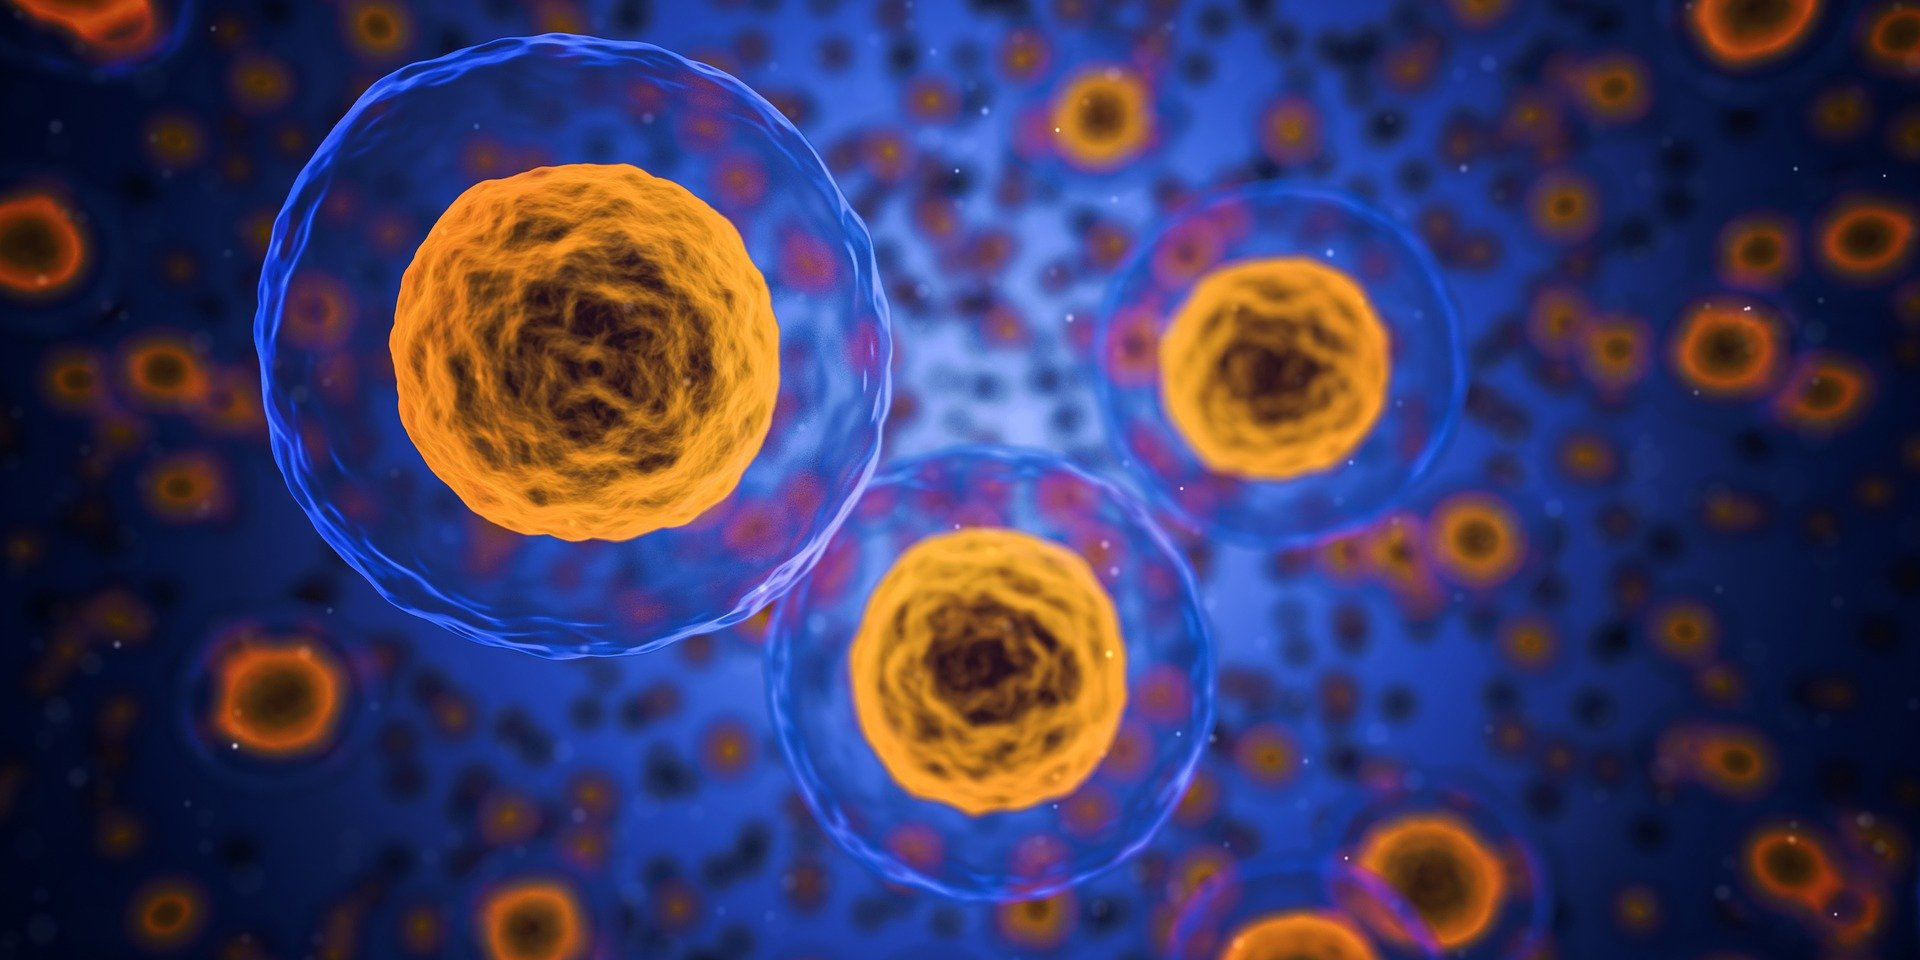 Human cells for research